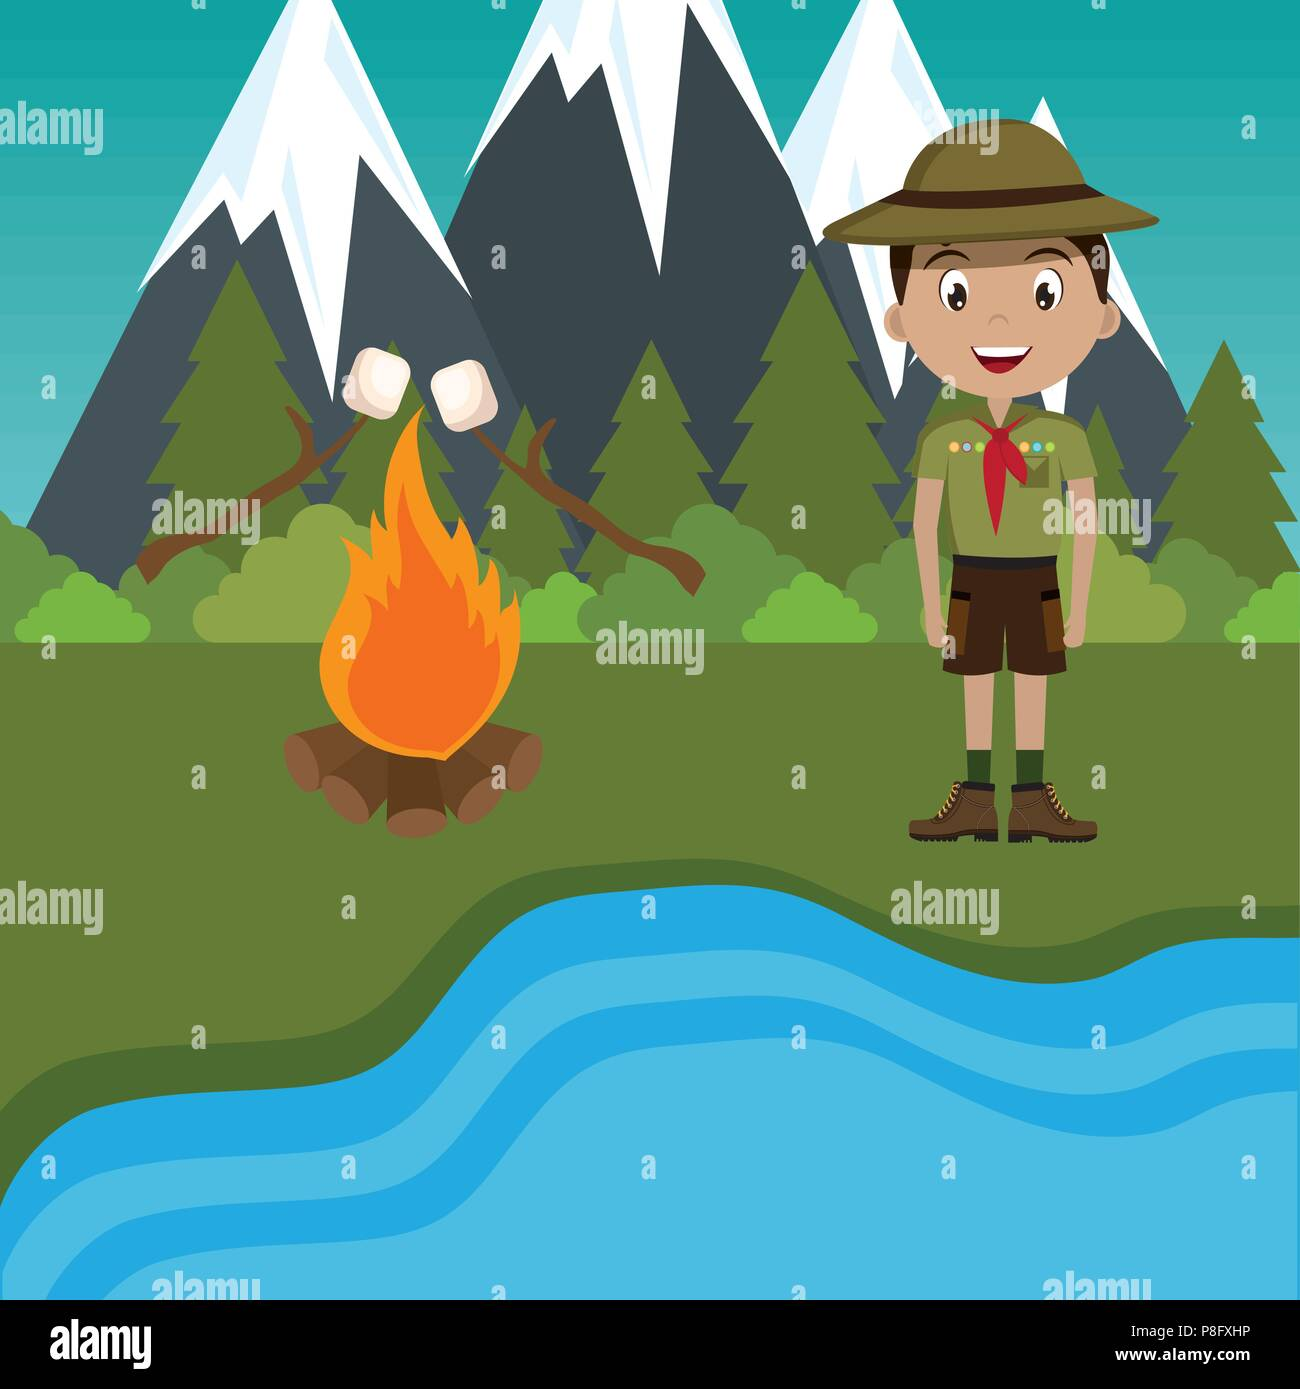 young scout in the camping zone scene - Stock Vector